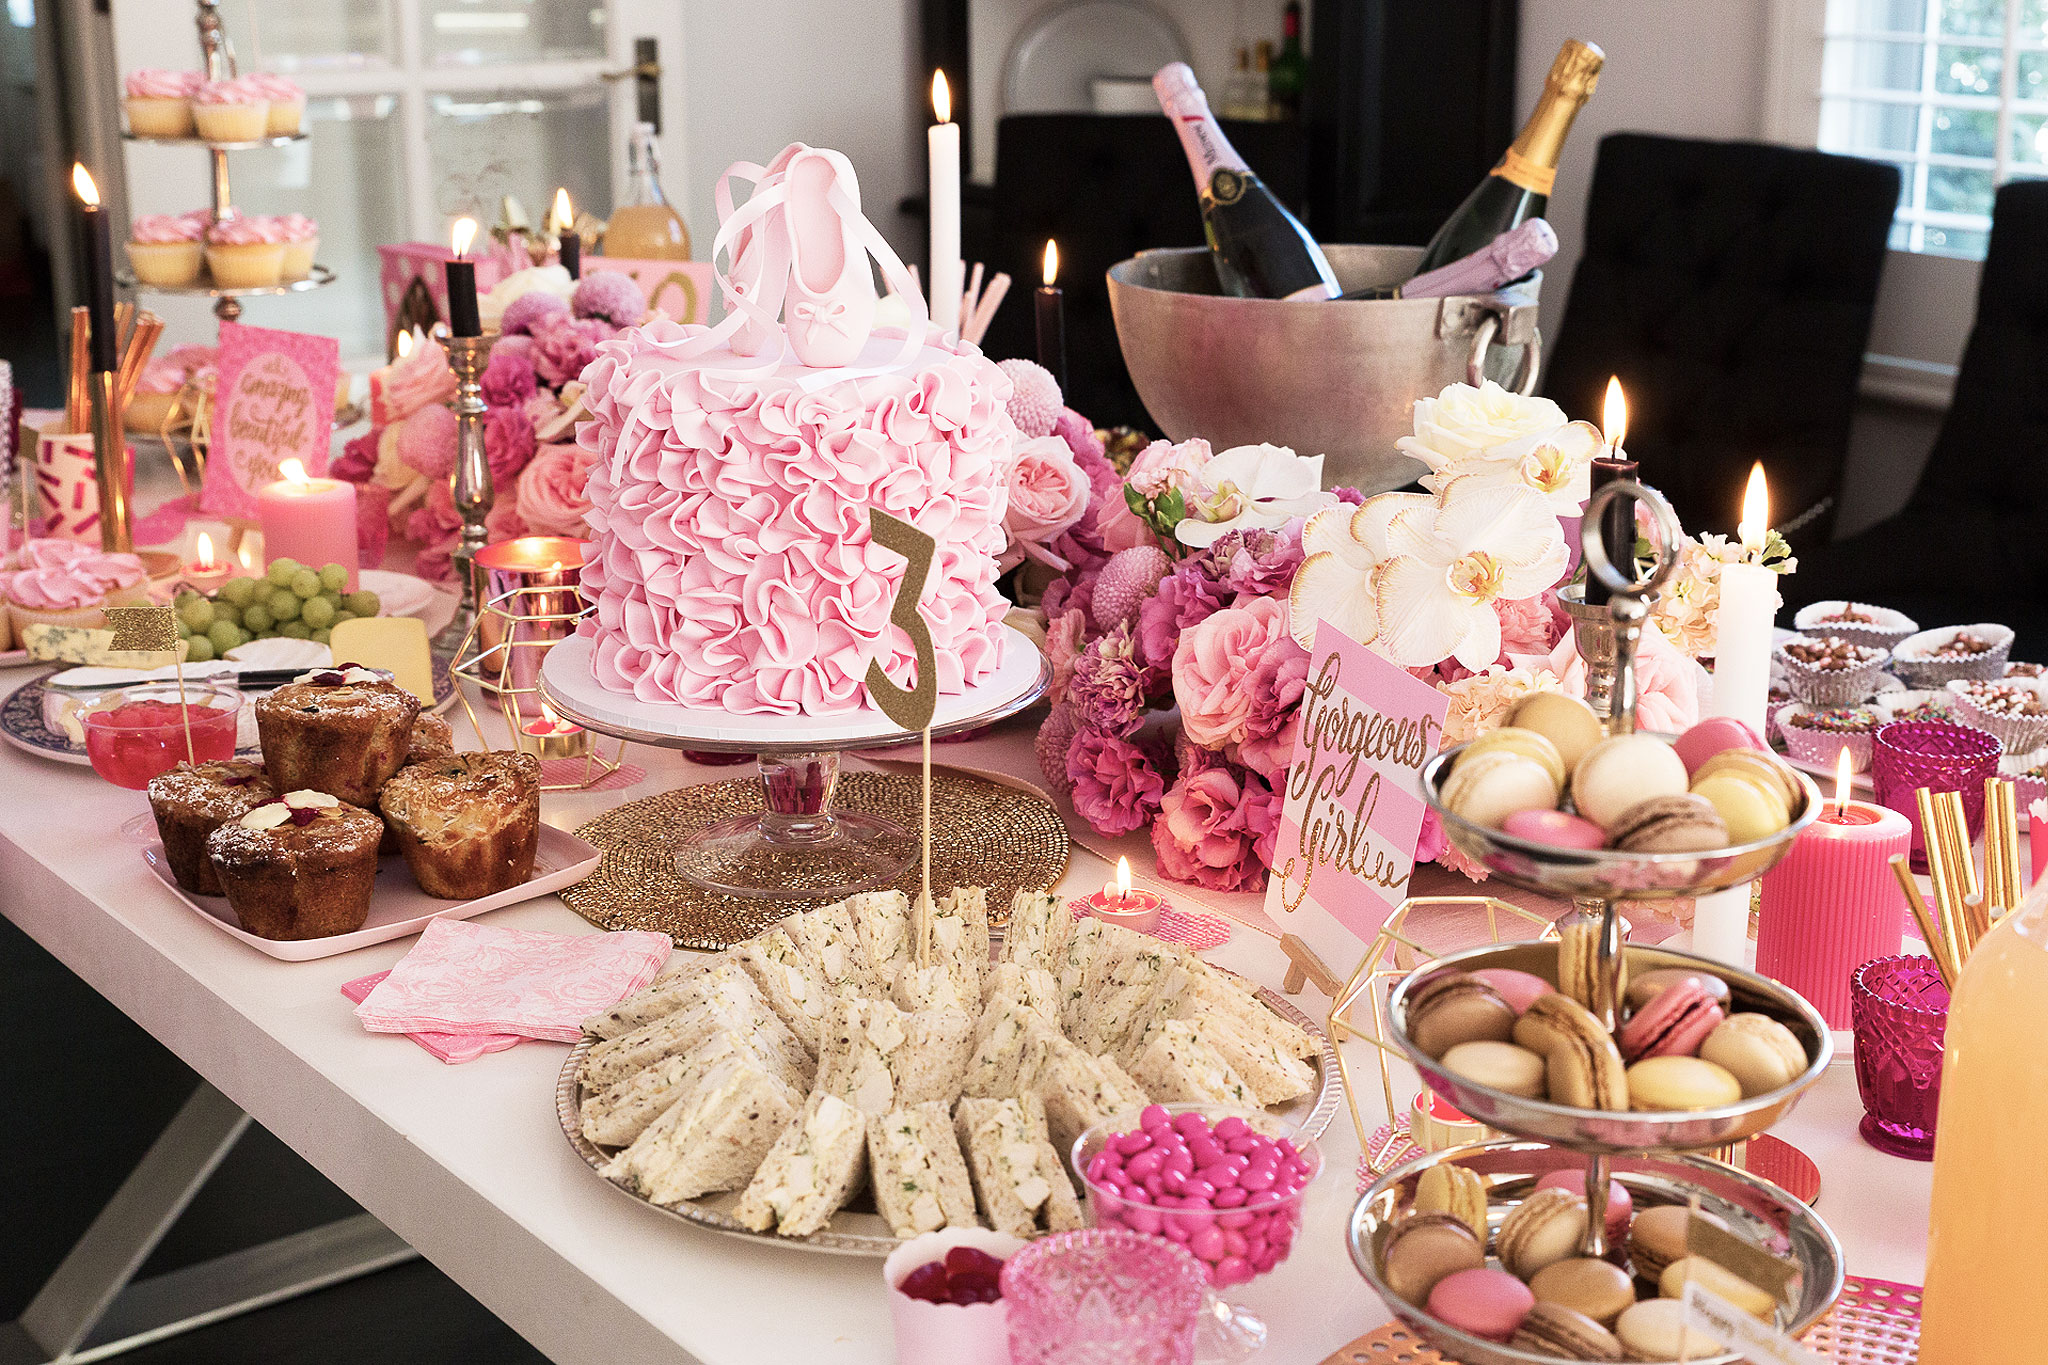 BALLET PARTY,DIY PARTY STYLING,LITTLE PARTY FACES,melbourne mum,MUMMY BLOGGER,Sarah Jane Young,sheissarahjane,THIRD BIRTHDAY